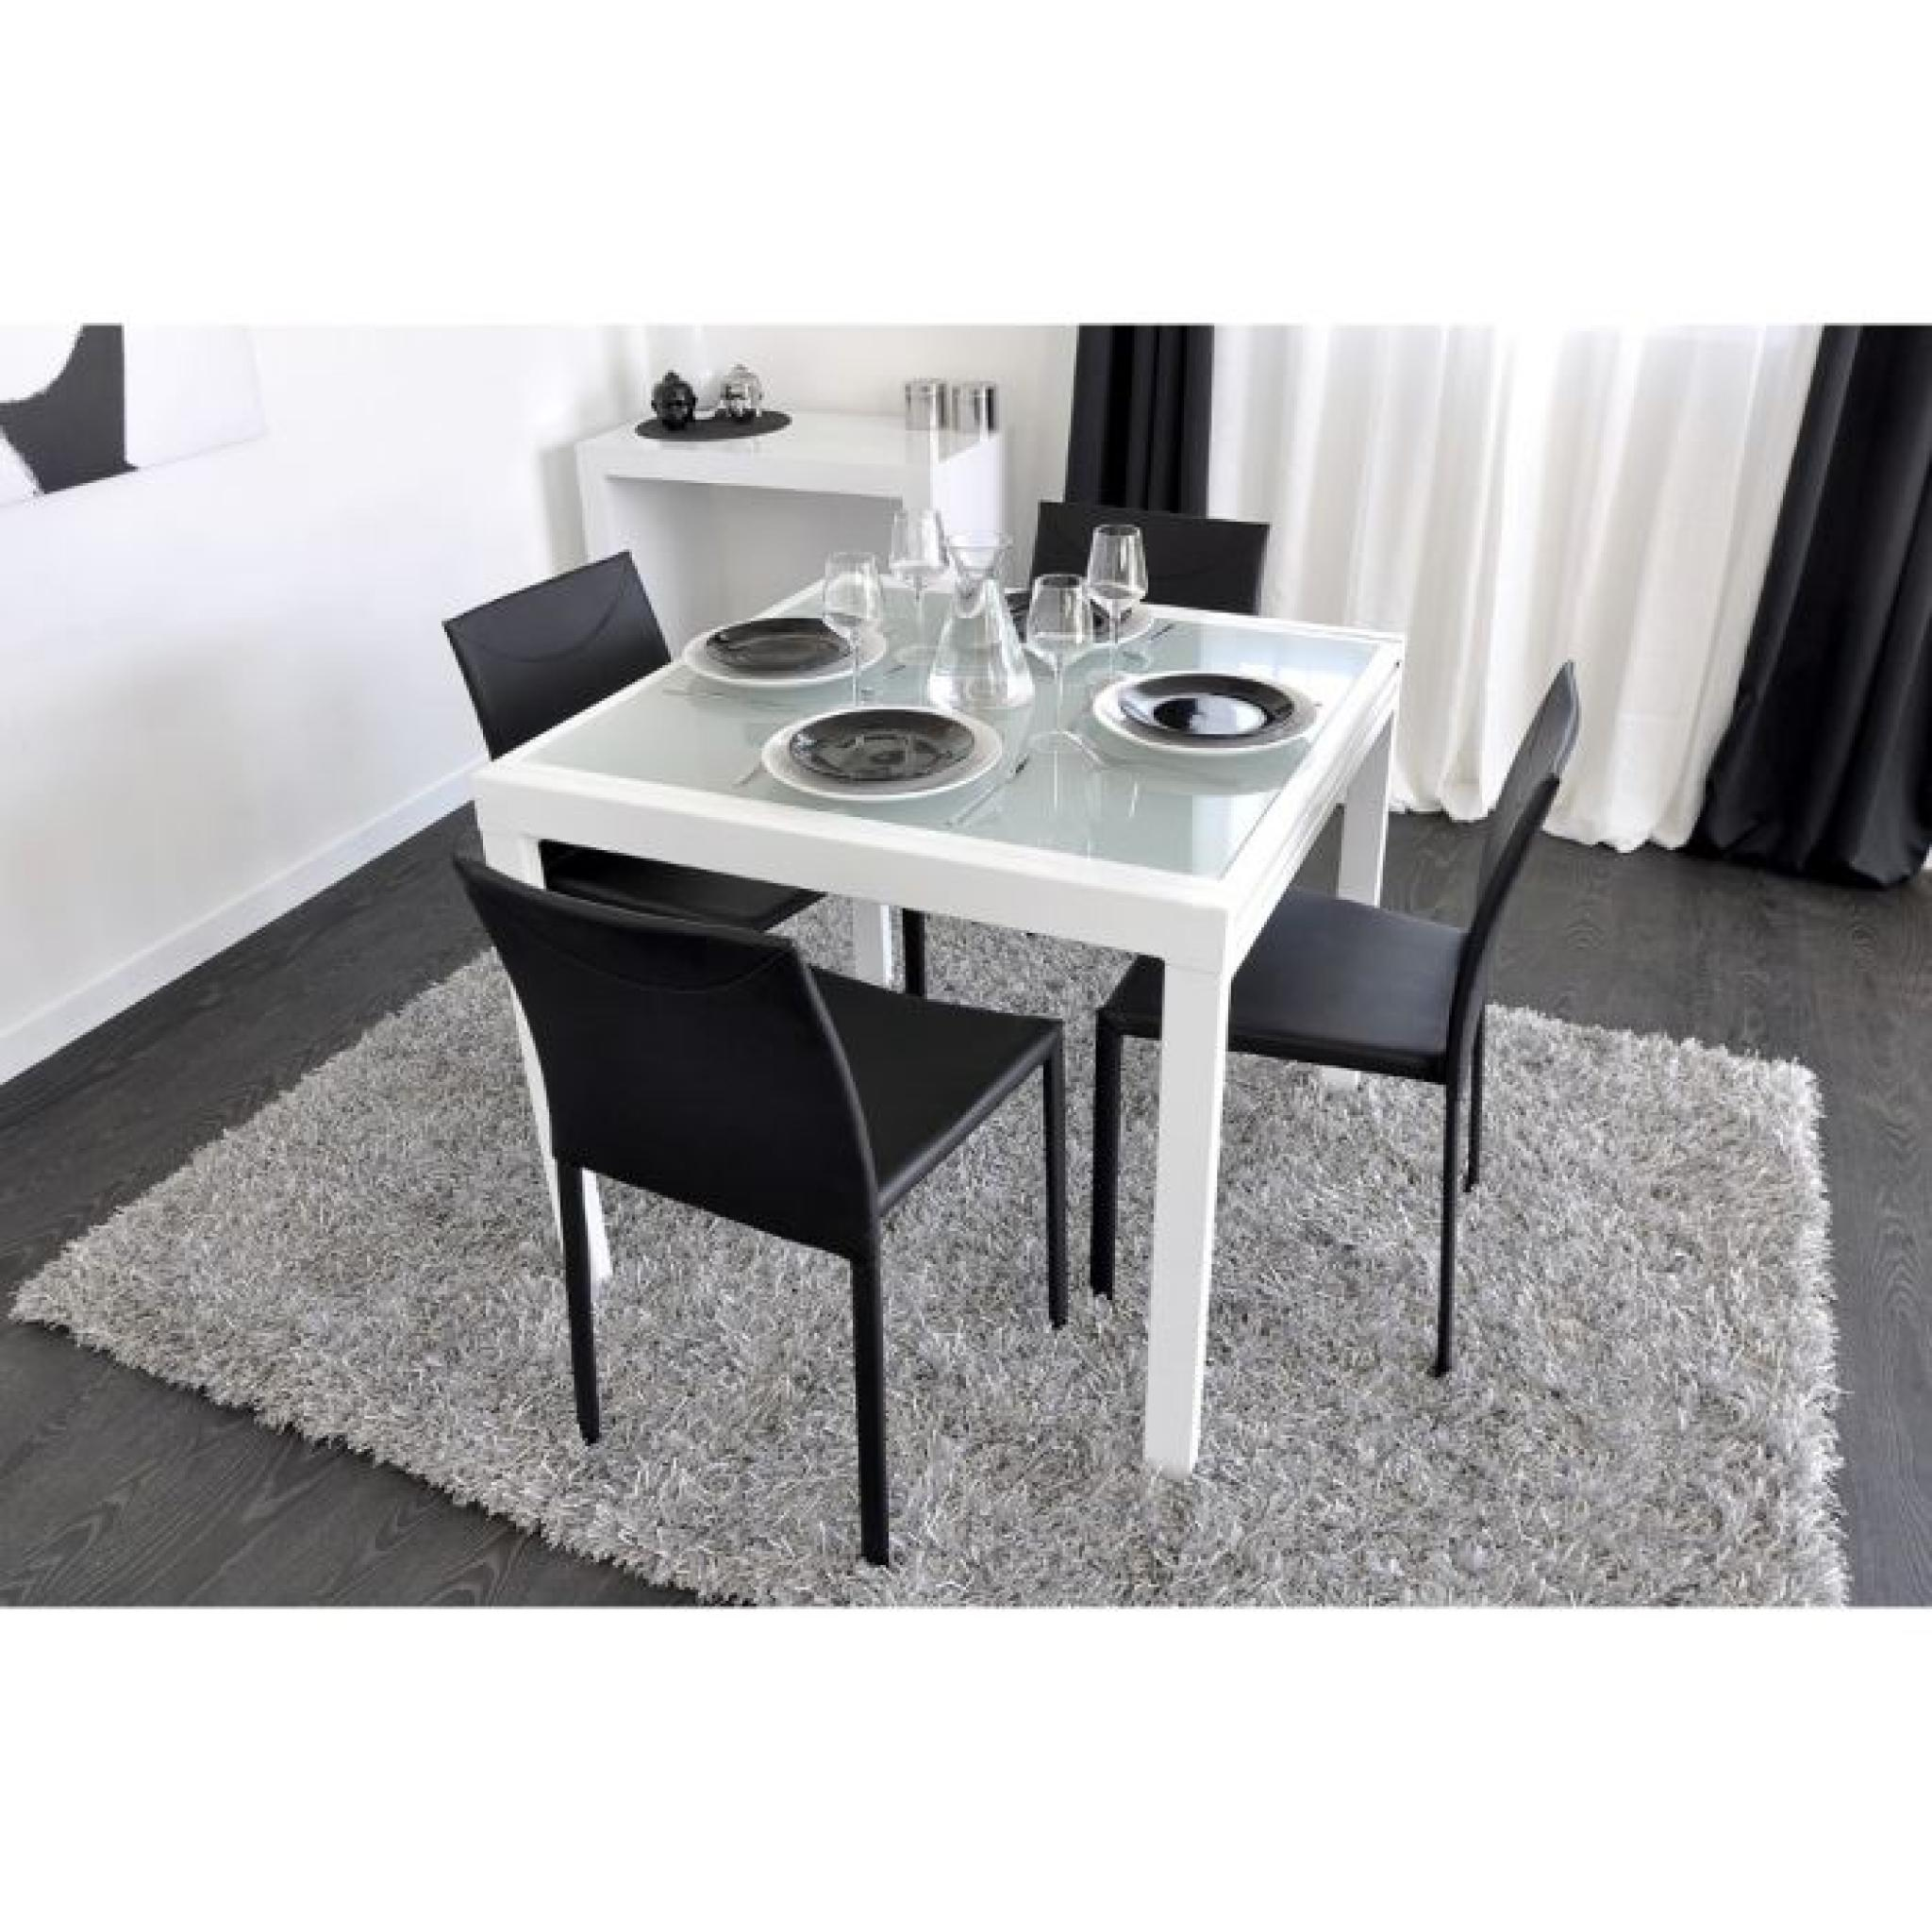 extend table extensible blanche 90 180cm achat vente table salle a manger pas cher couleur. Black Bedroom Furniture Sets. Home Design Ideas